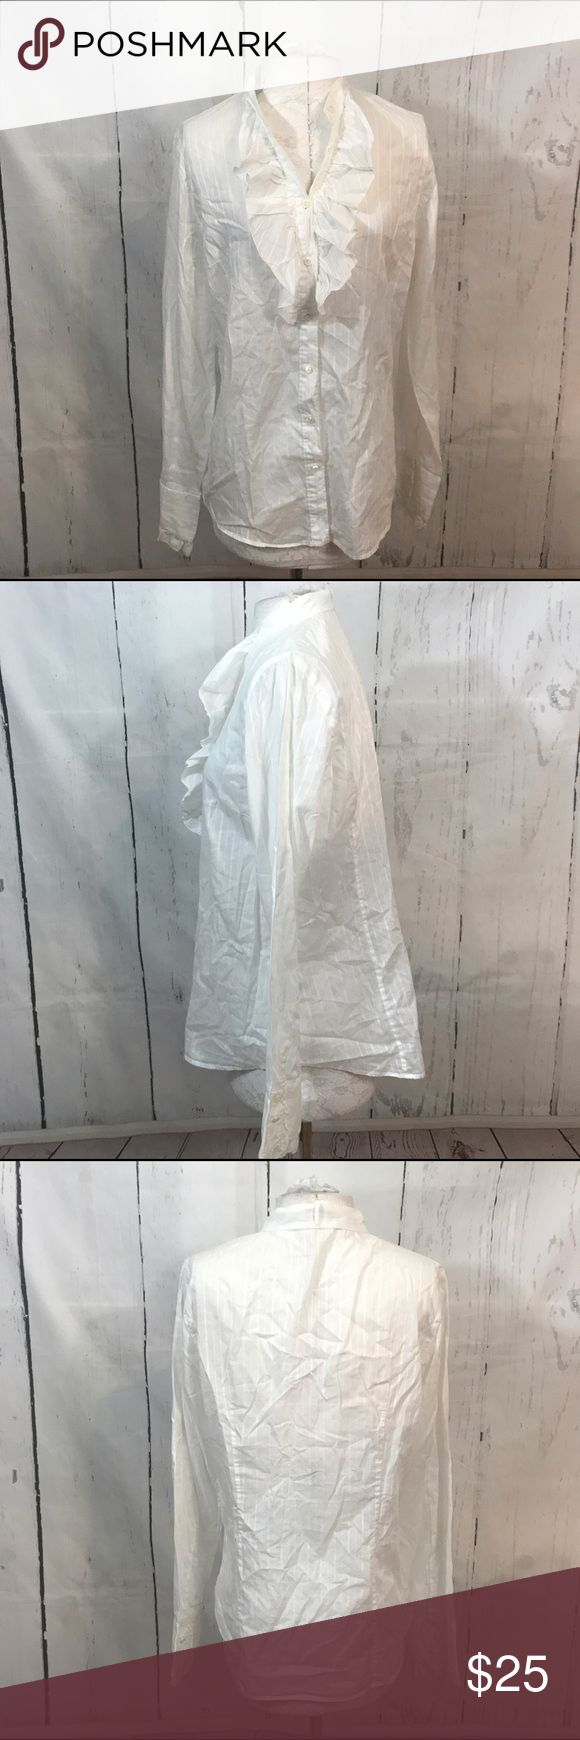 """💙💙 J CREW WHITE VICTORIAN STYLE TOP B32 Condition: Excellent pre owned condition Approximate measurements (laying flat): 20"""" bust 27"""" Length  Item location: bin 32  ❤no trades/no modeling❤ J. Crew Tops Button Down Shirts"""